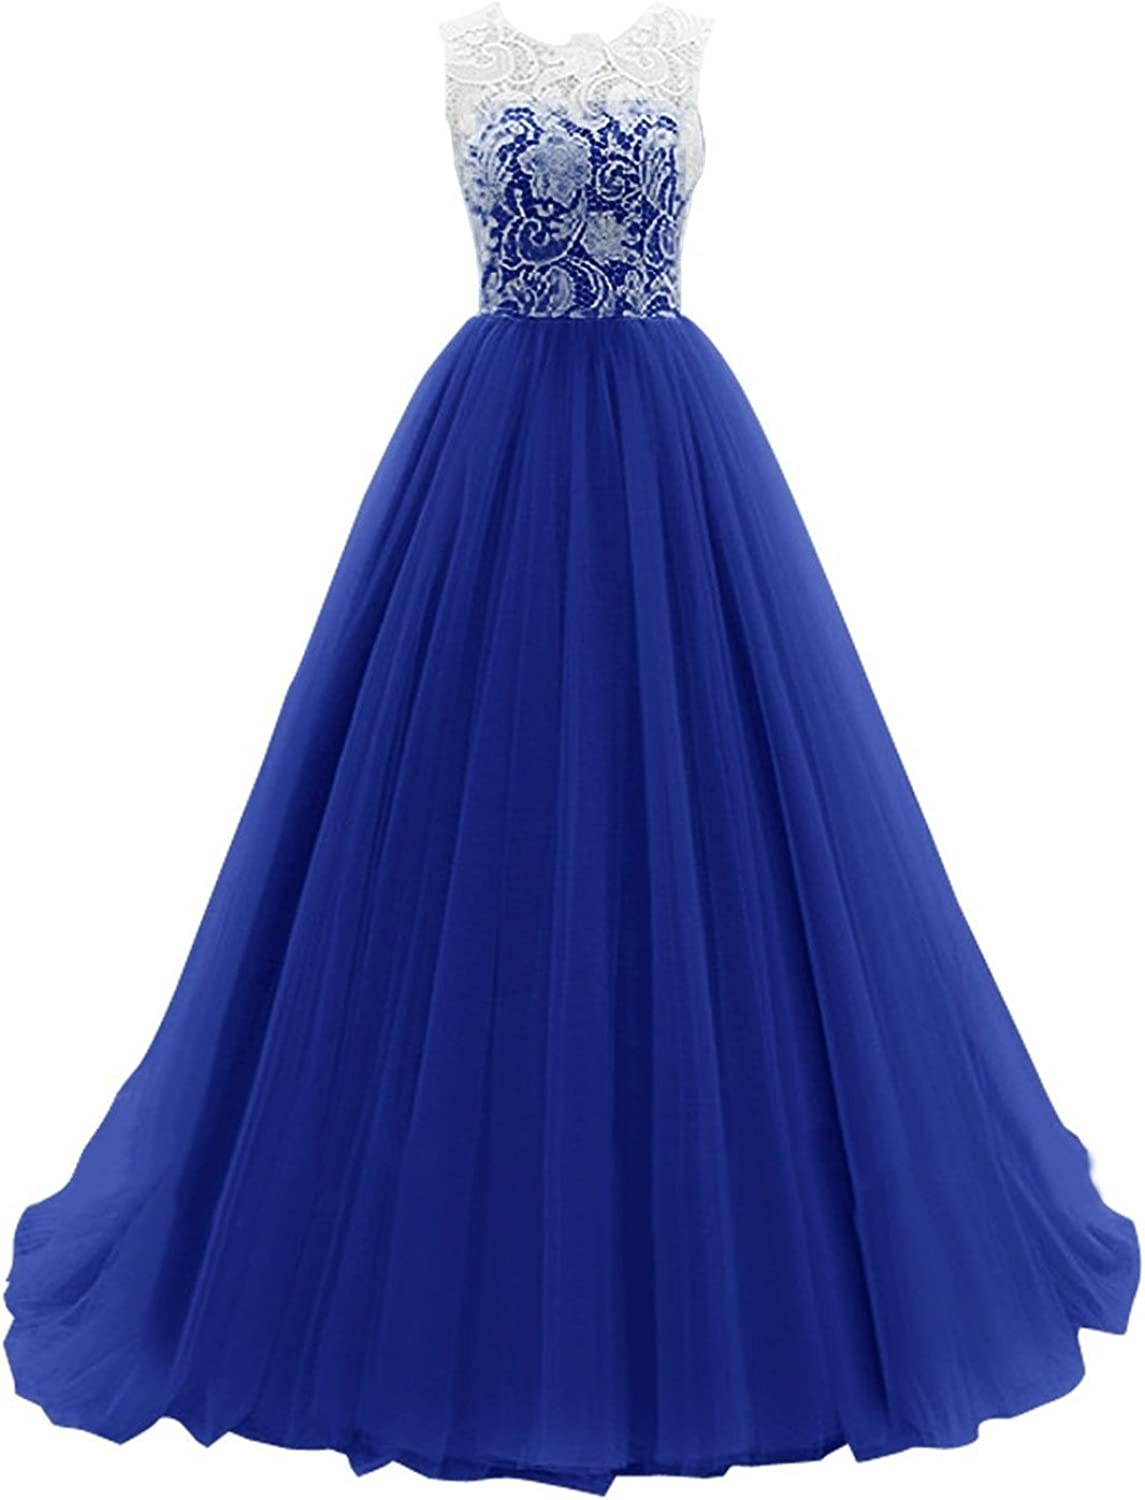 Bess Bridal Women´s Long Lace Tulle Ball Gown Formal Prom Evening Dress